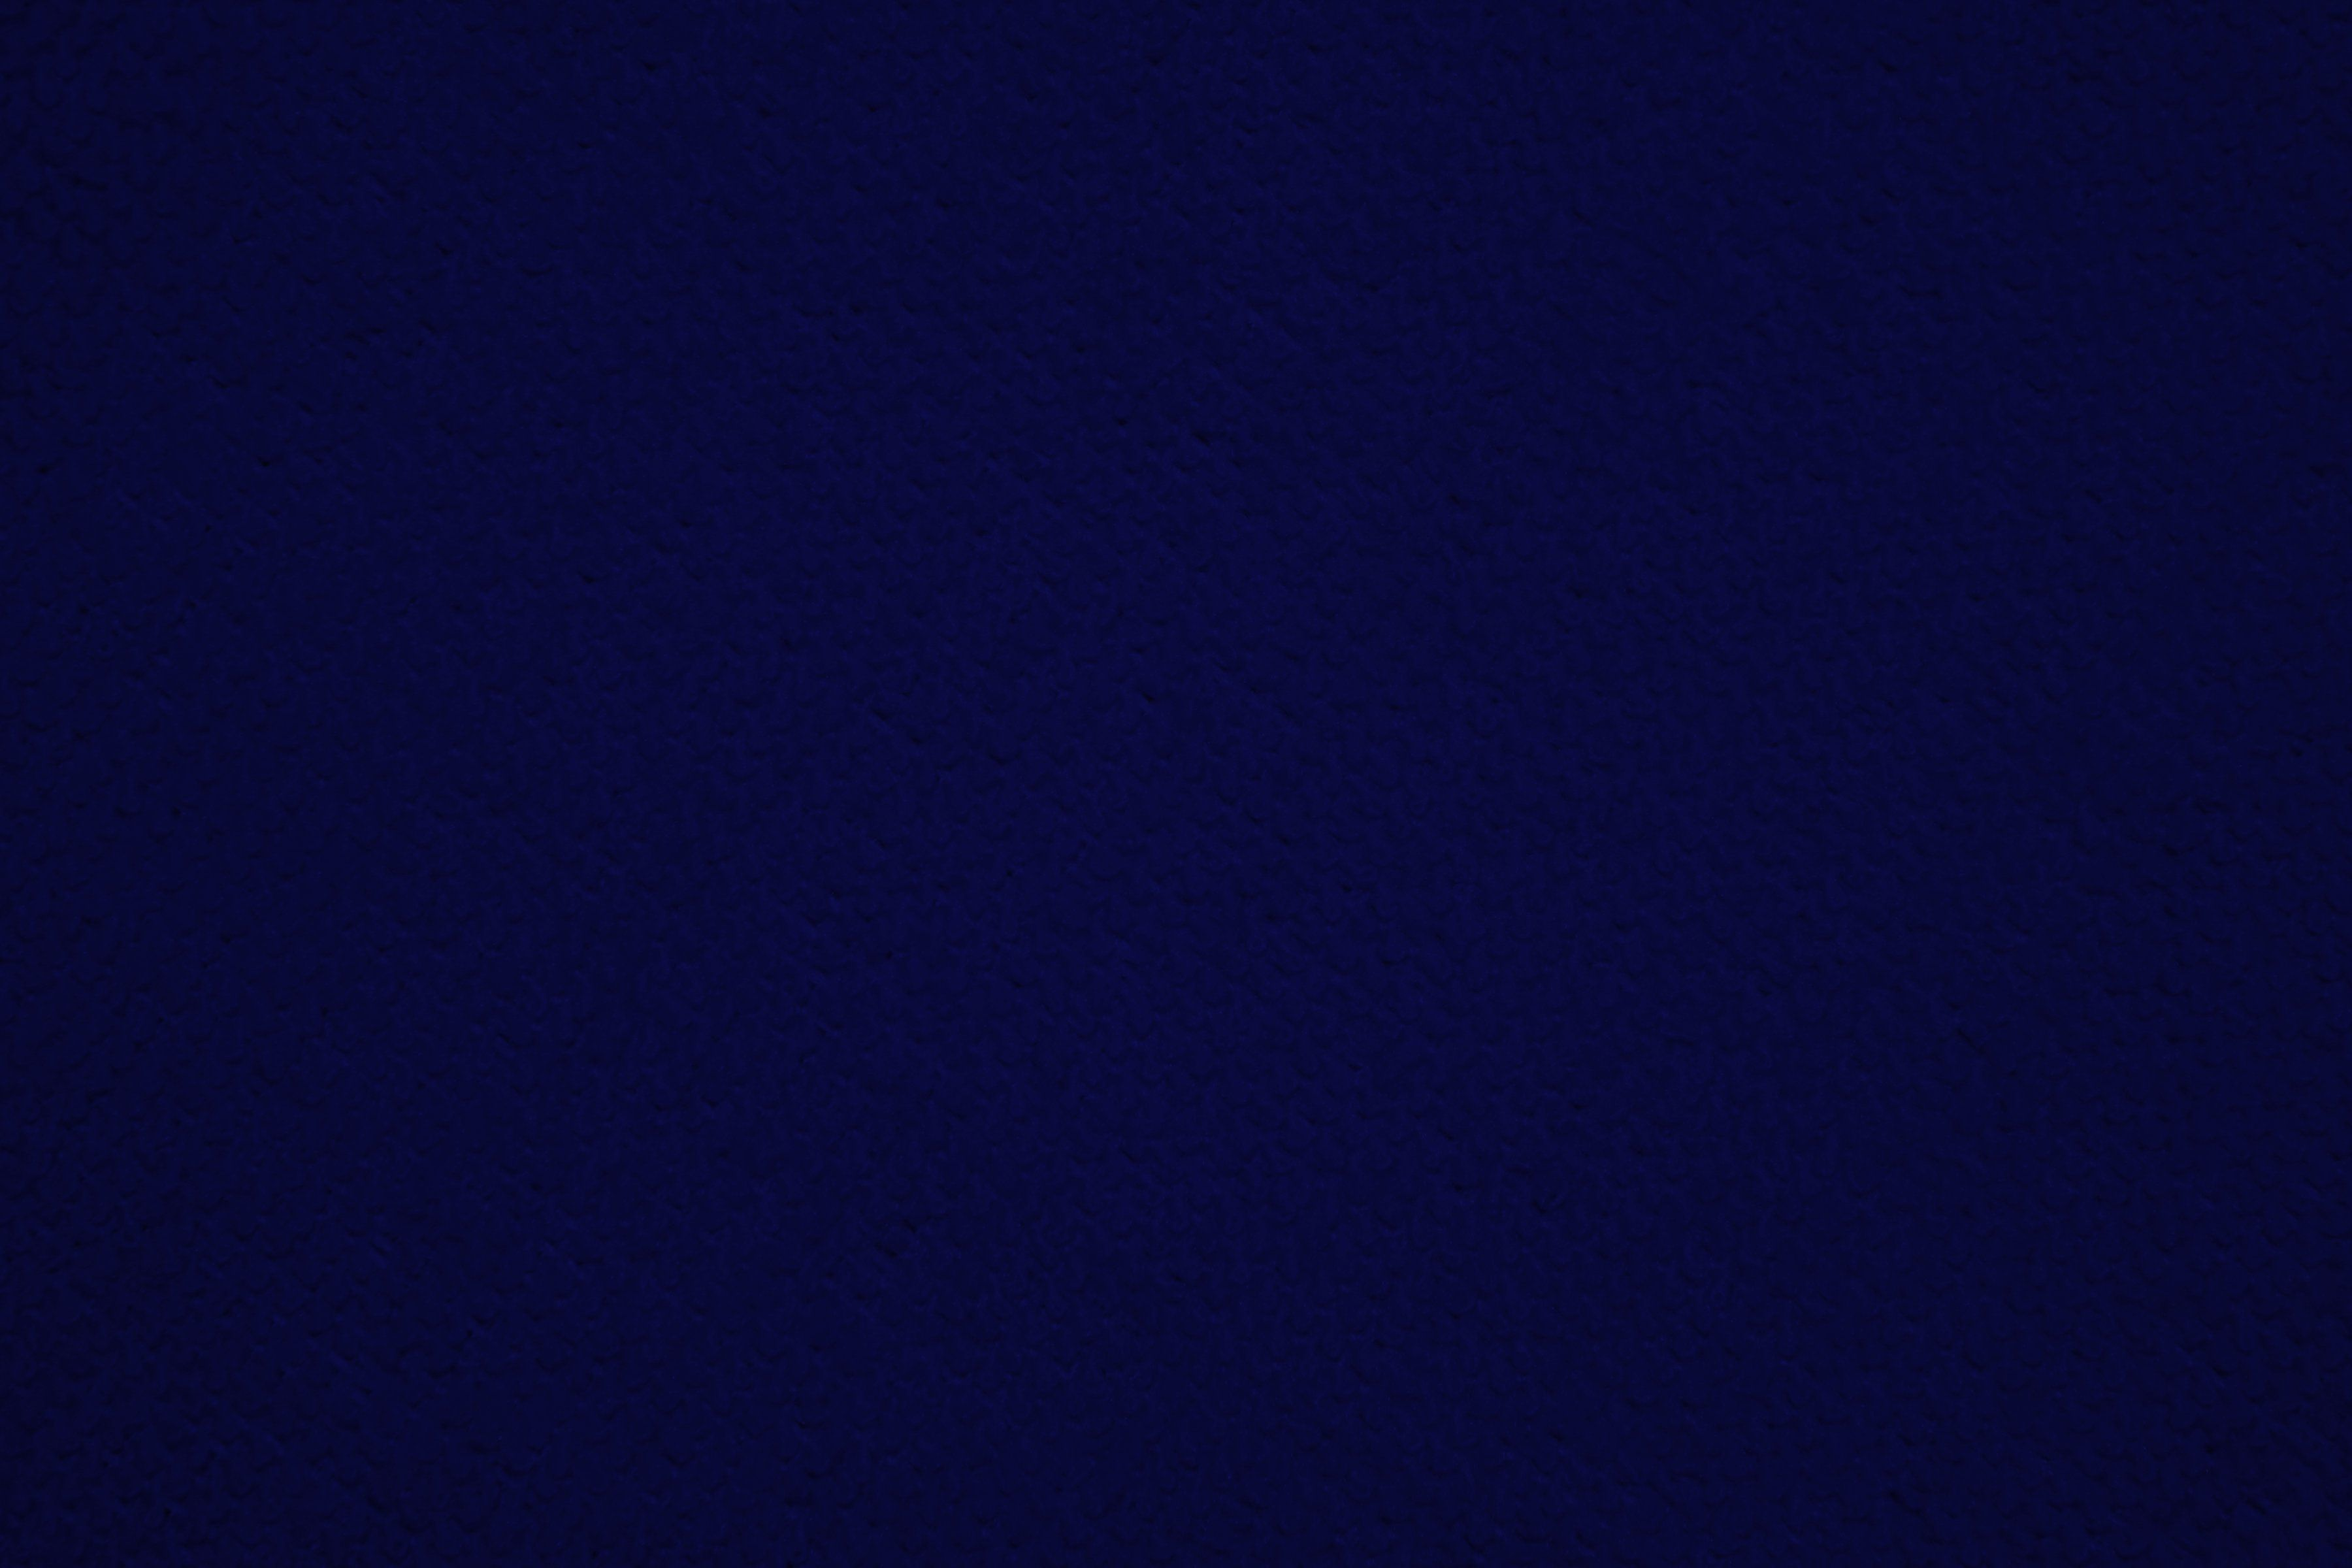 Solid wallpaper borders navy blue home humming Navy purple color